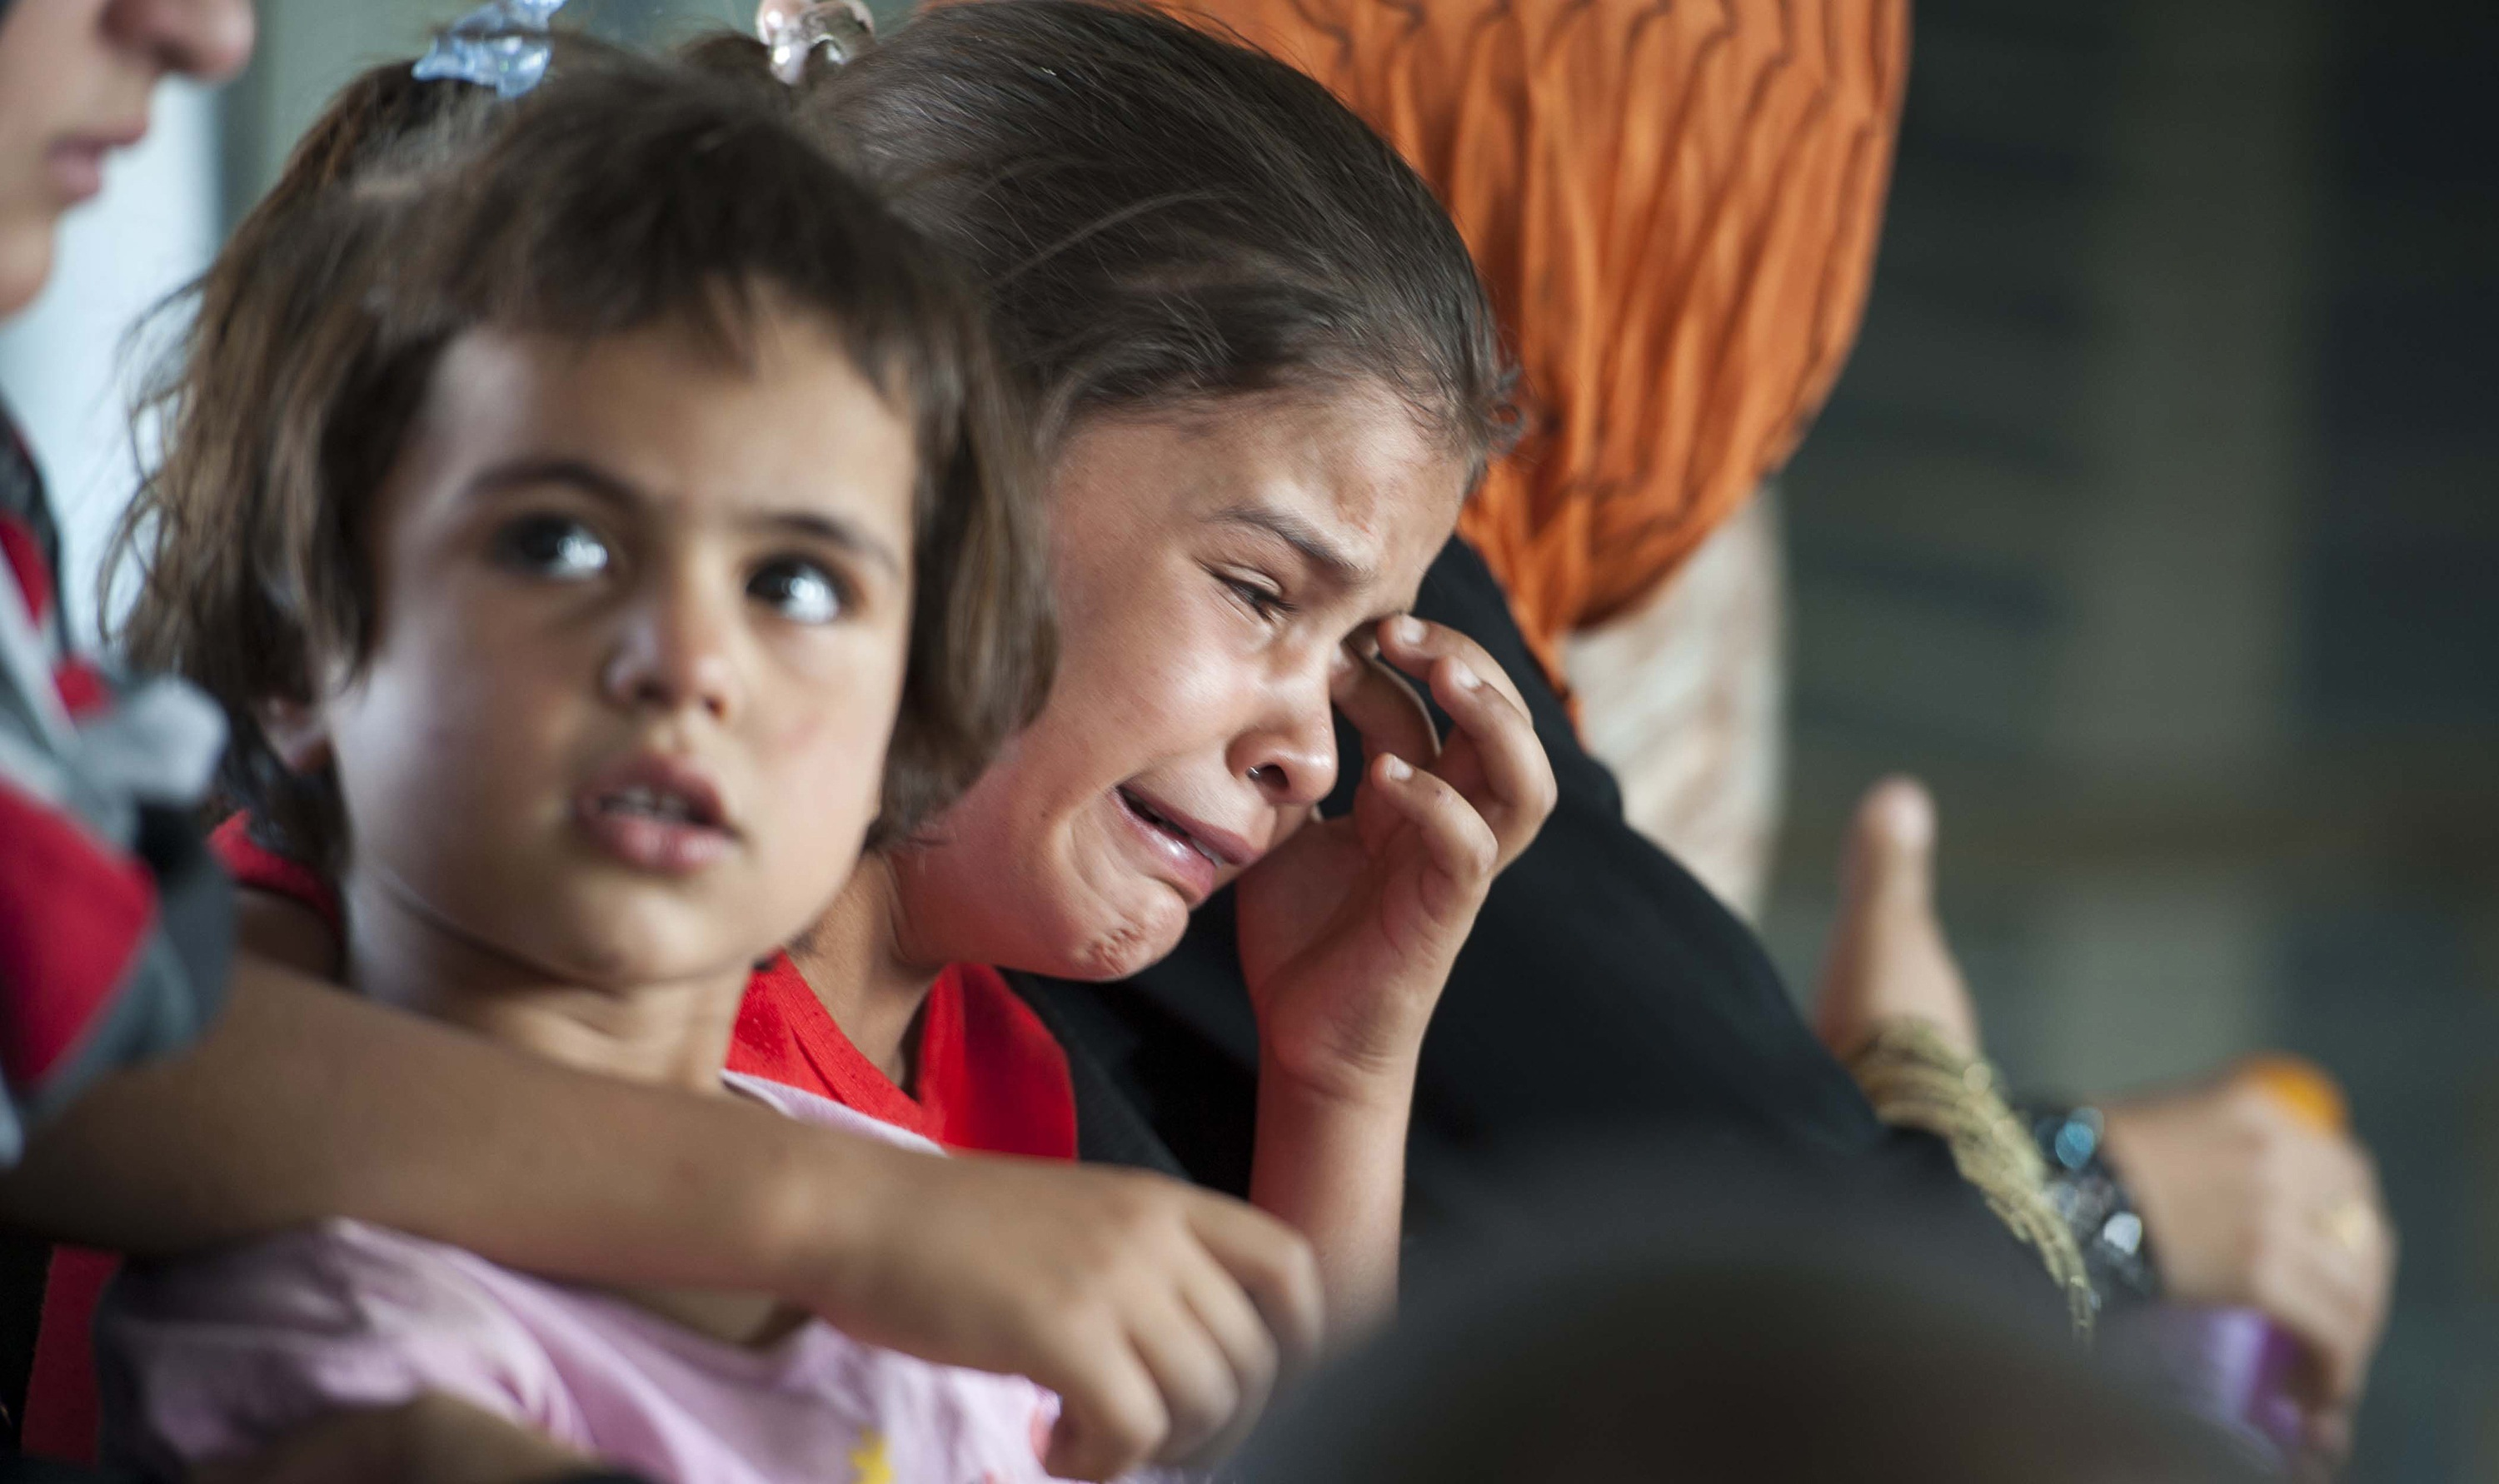 A child cries in a military helicopter after being evacuated by Iraqi forces from Amerli, north of Baghdad August 29, 2014.